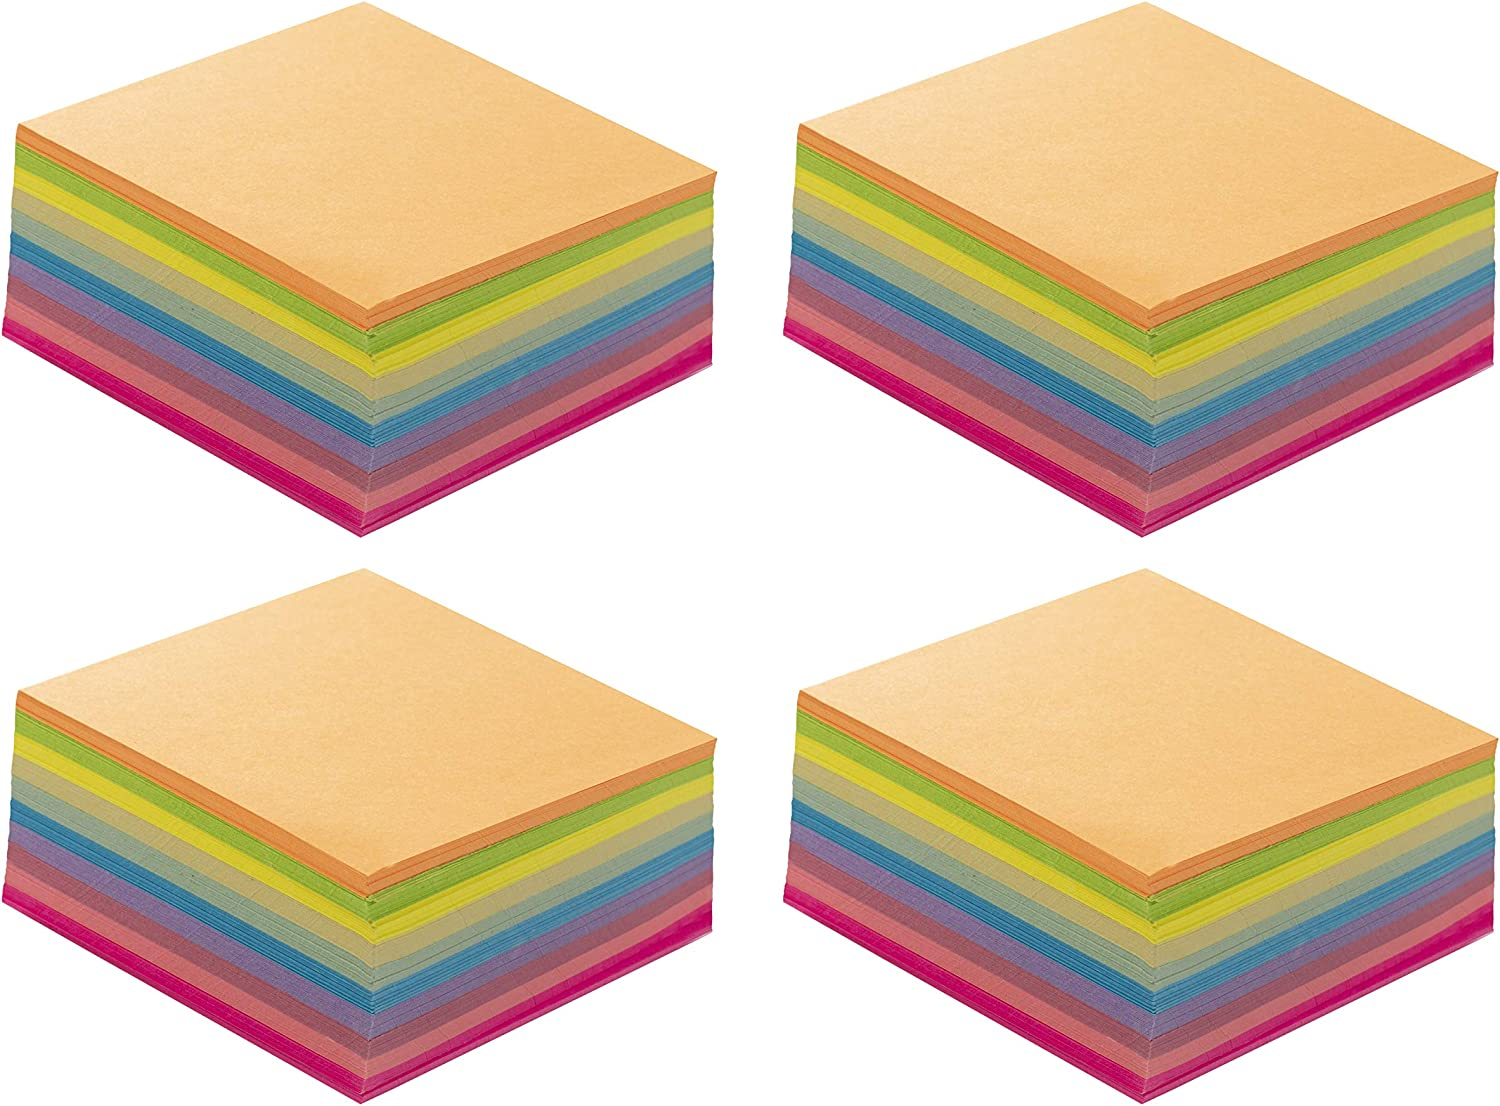 #AV232-8. AV paper series 232 sheets Origami Papers For Making 2pcs of Yellow Color Paper Lotus in 2 Different Sizes.